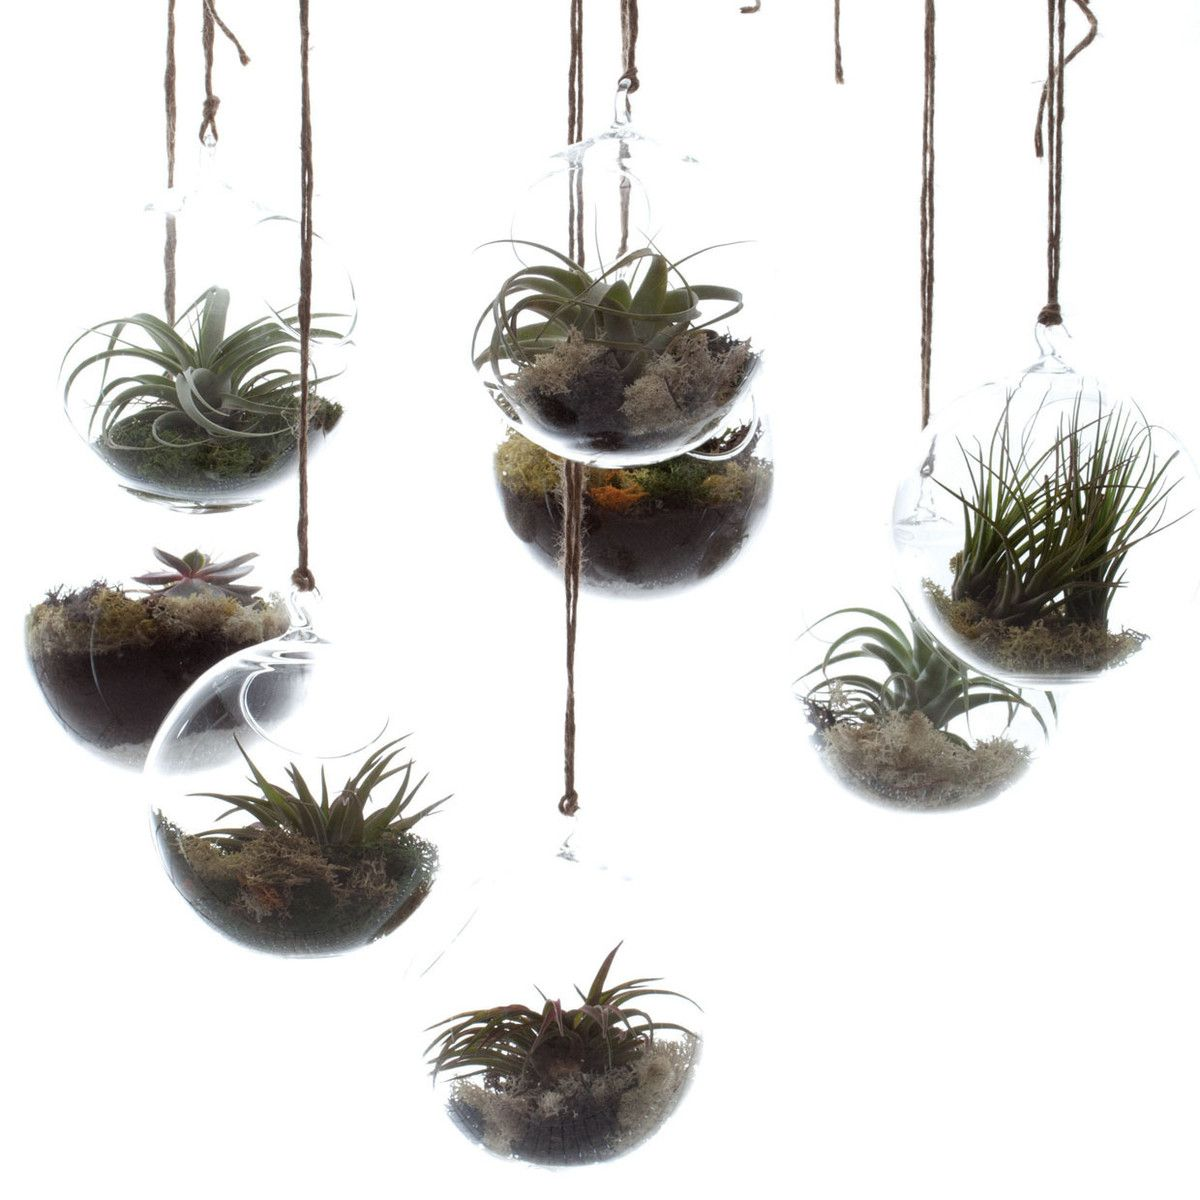 Awesome Hanging Terrariums. Looks Like A Garden From The